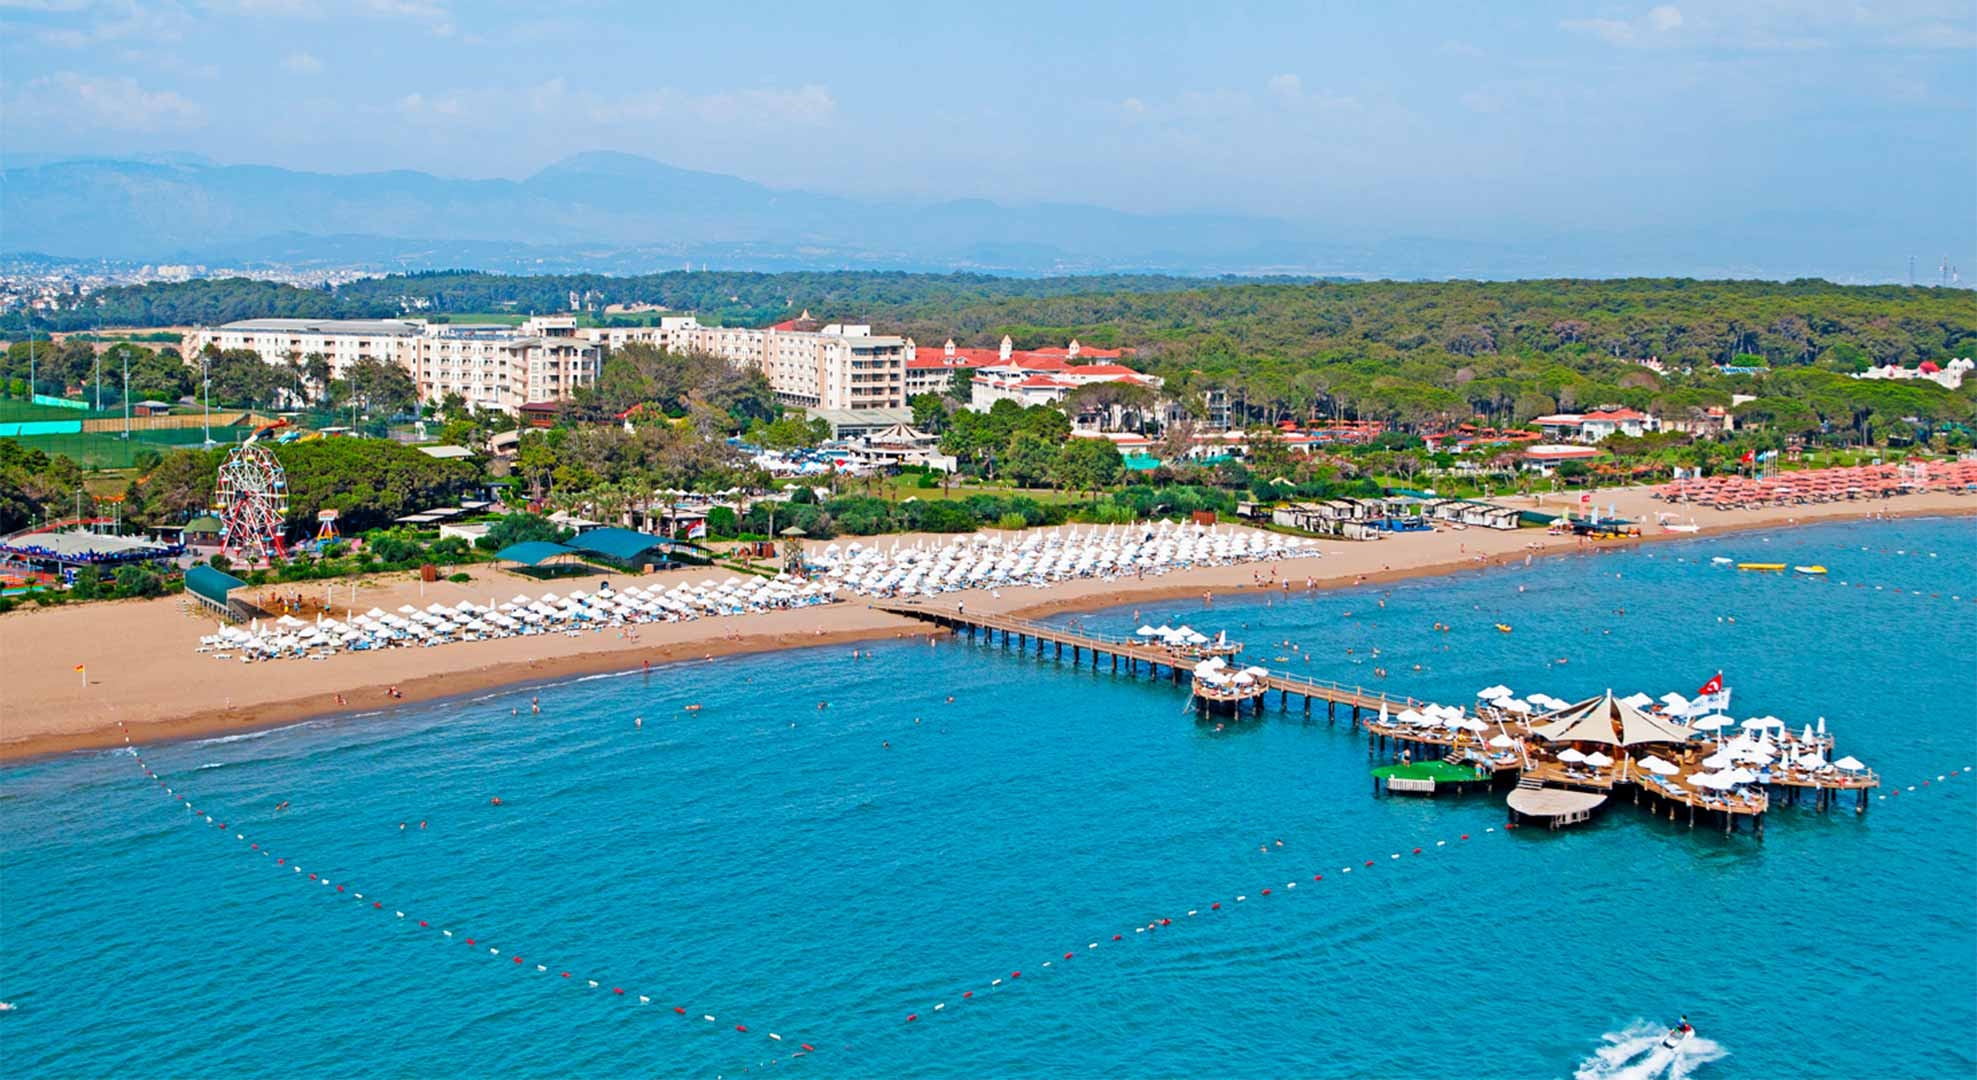 Sueno Beach Side Otur Butur'da